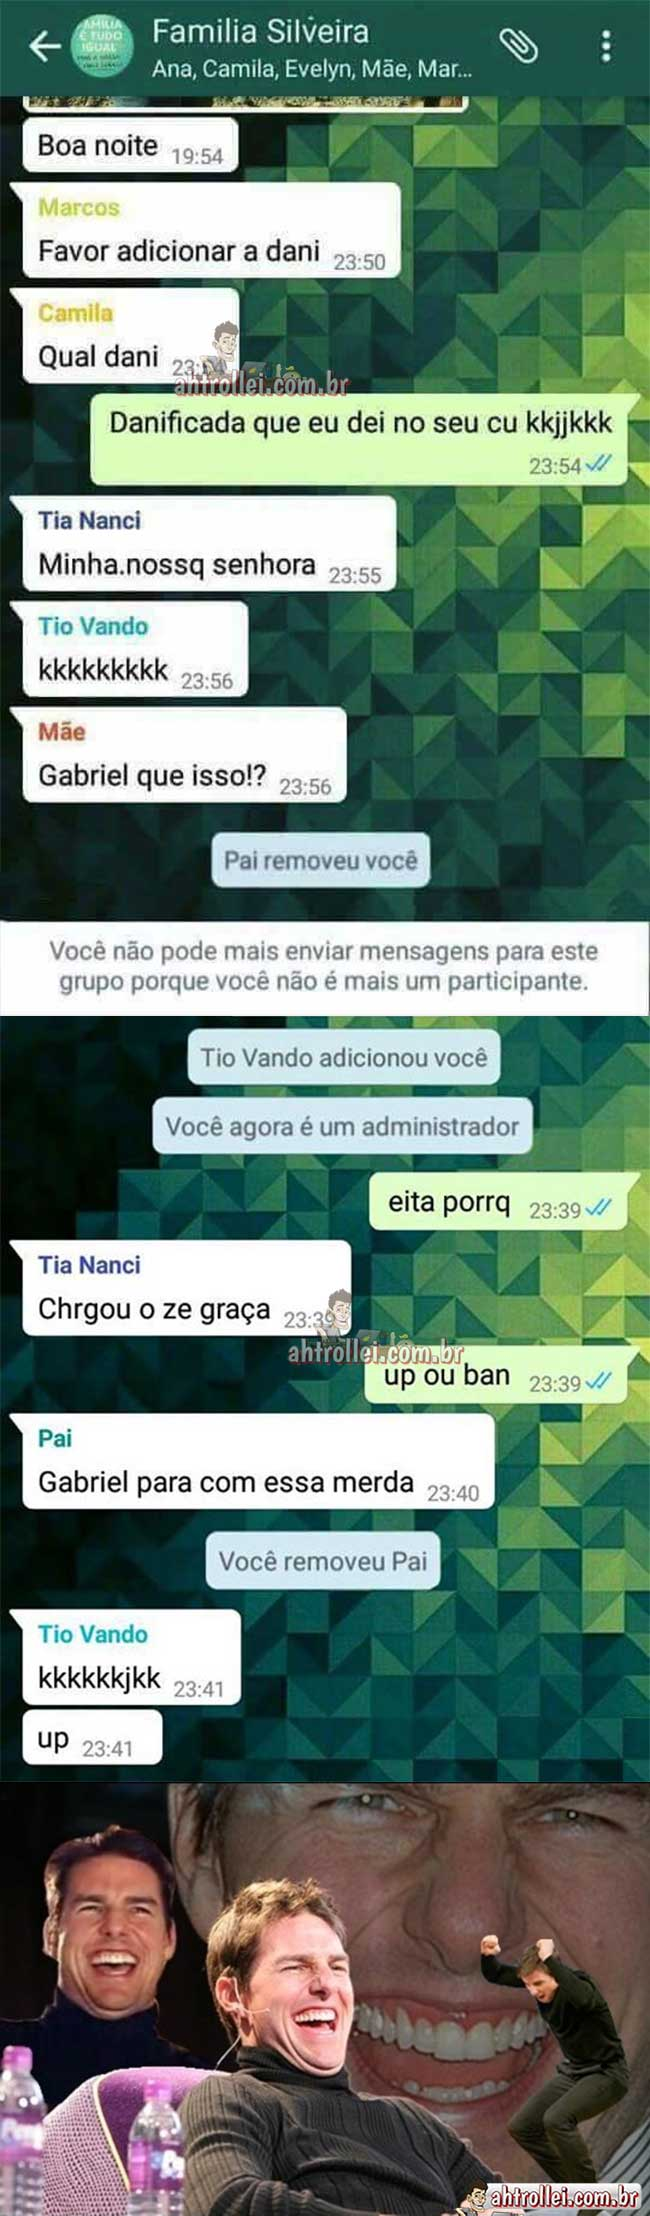 As aventuras do tio Vando no grupo da família